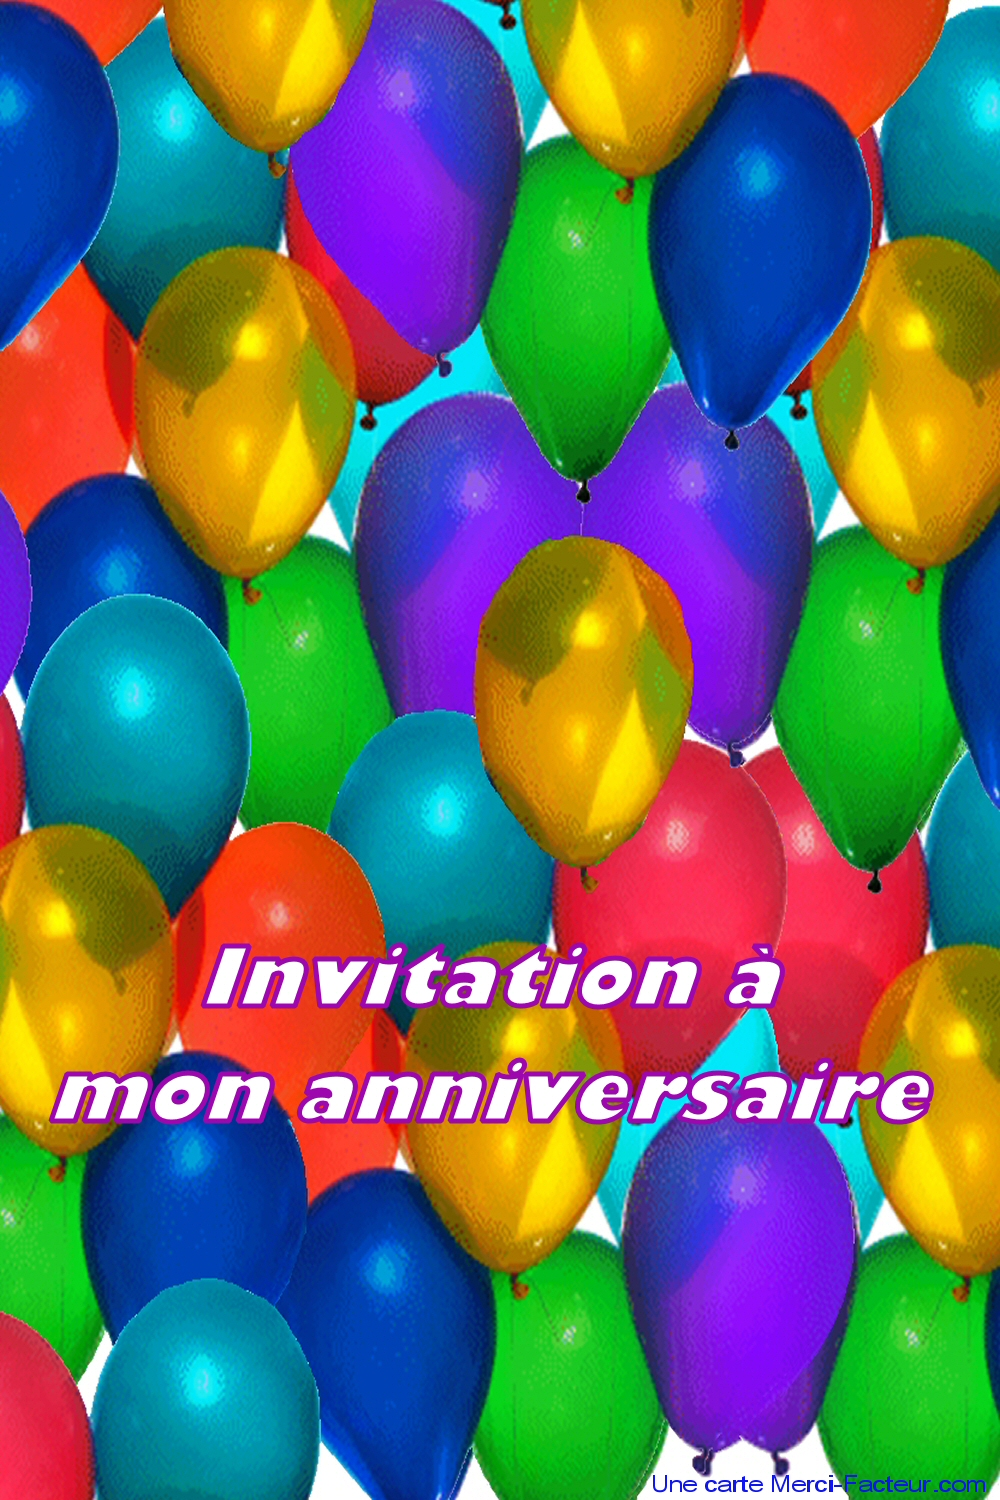 carton d invitation d anniversaire imprimer gratuit et invitations anniversaire merci facteur. Black Bedroom Furniture Sets. Home Design Ideas